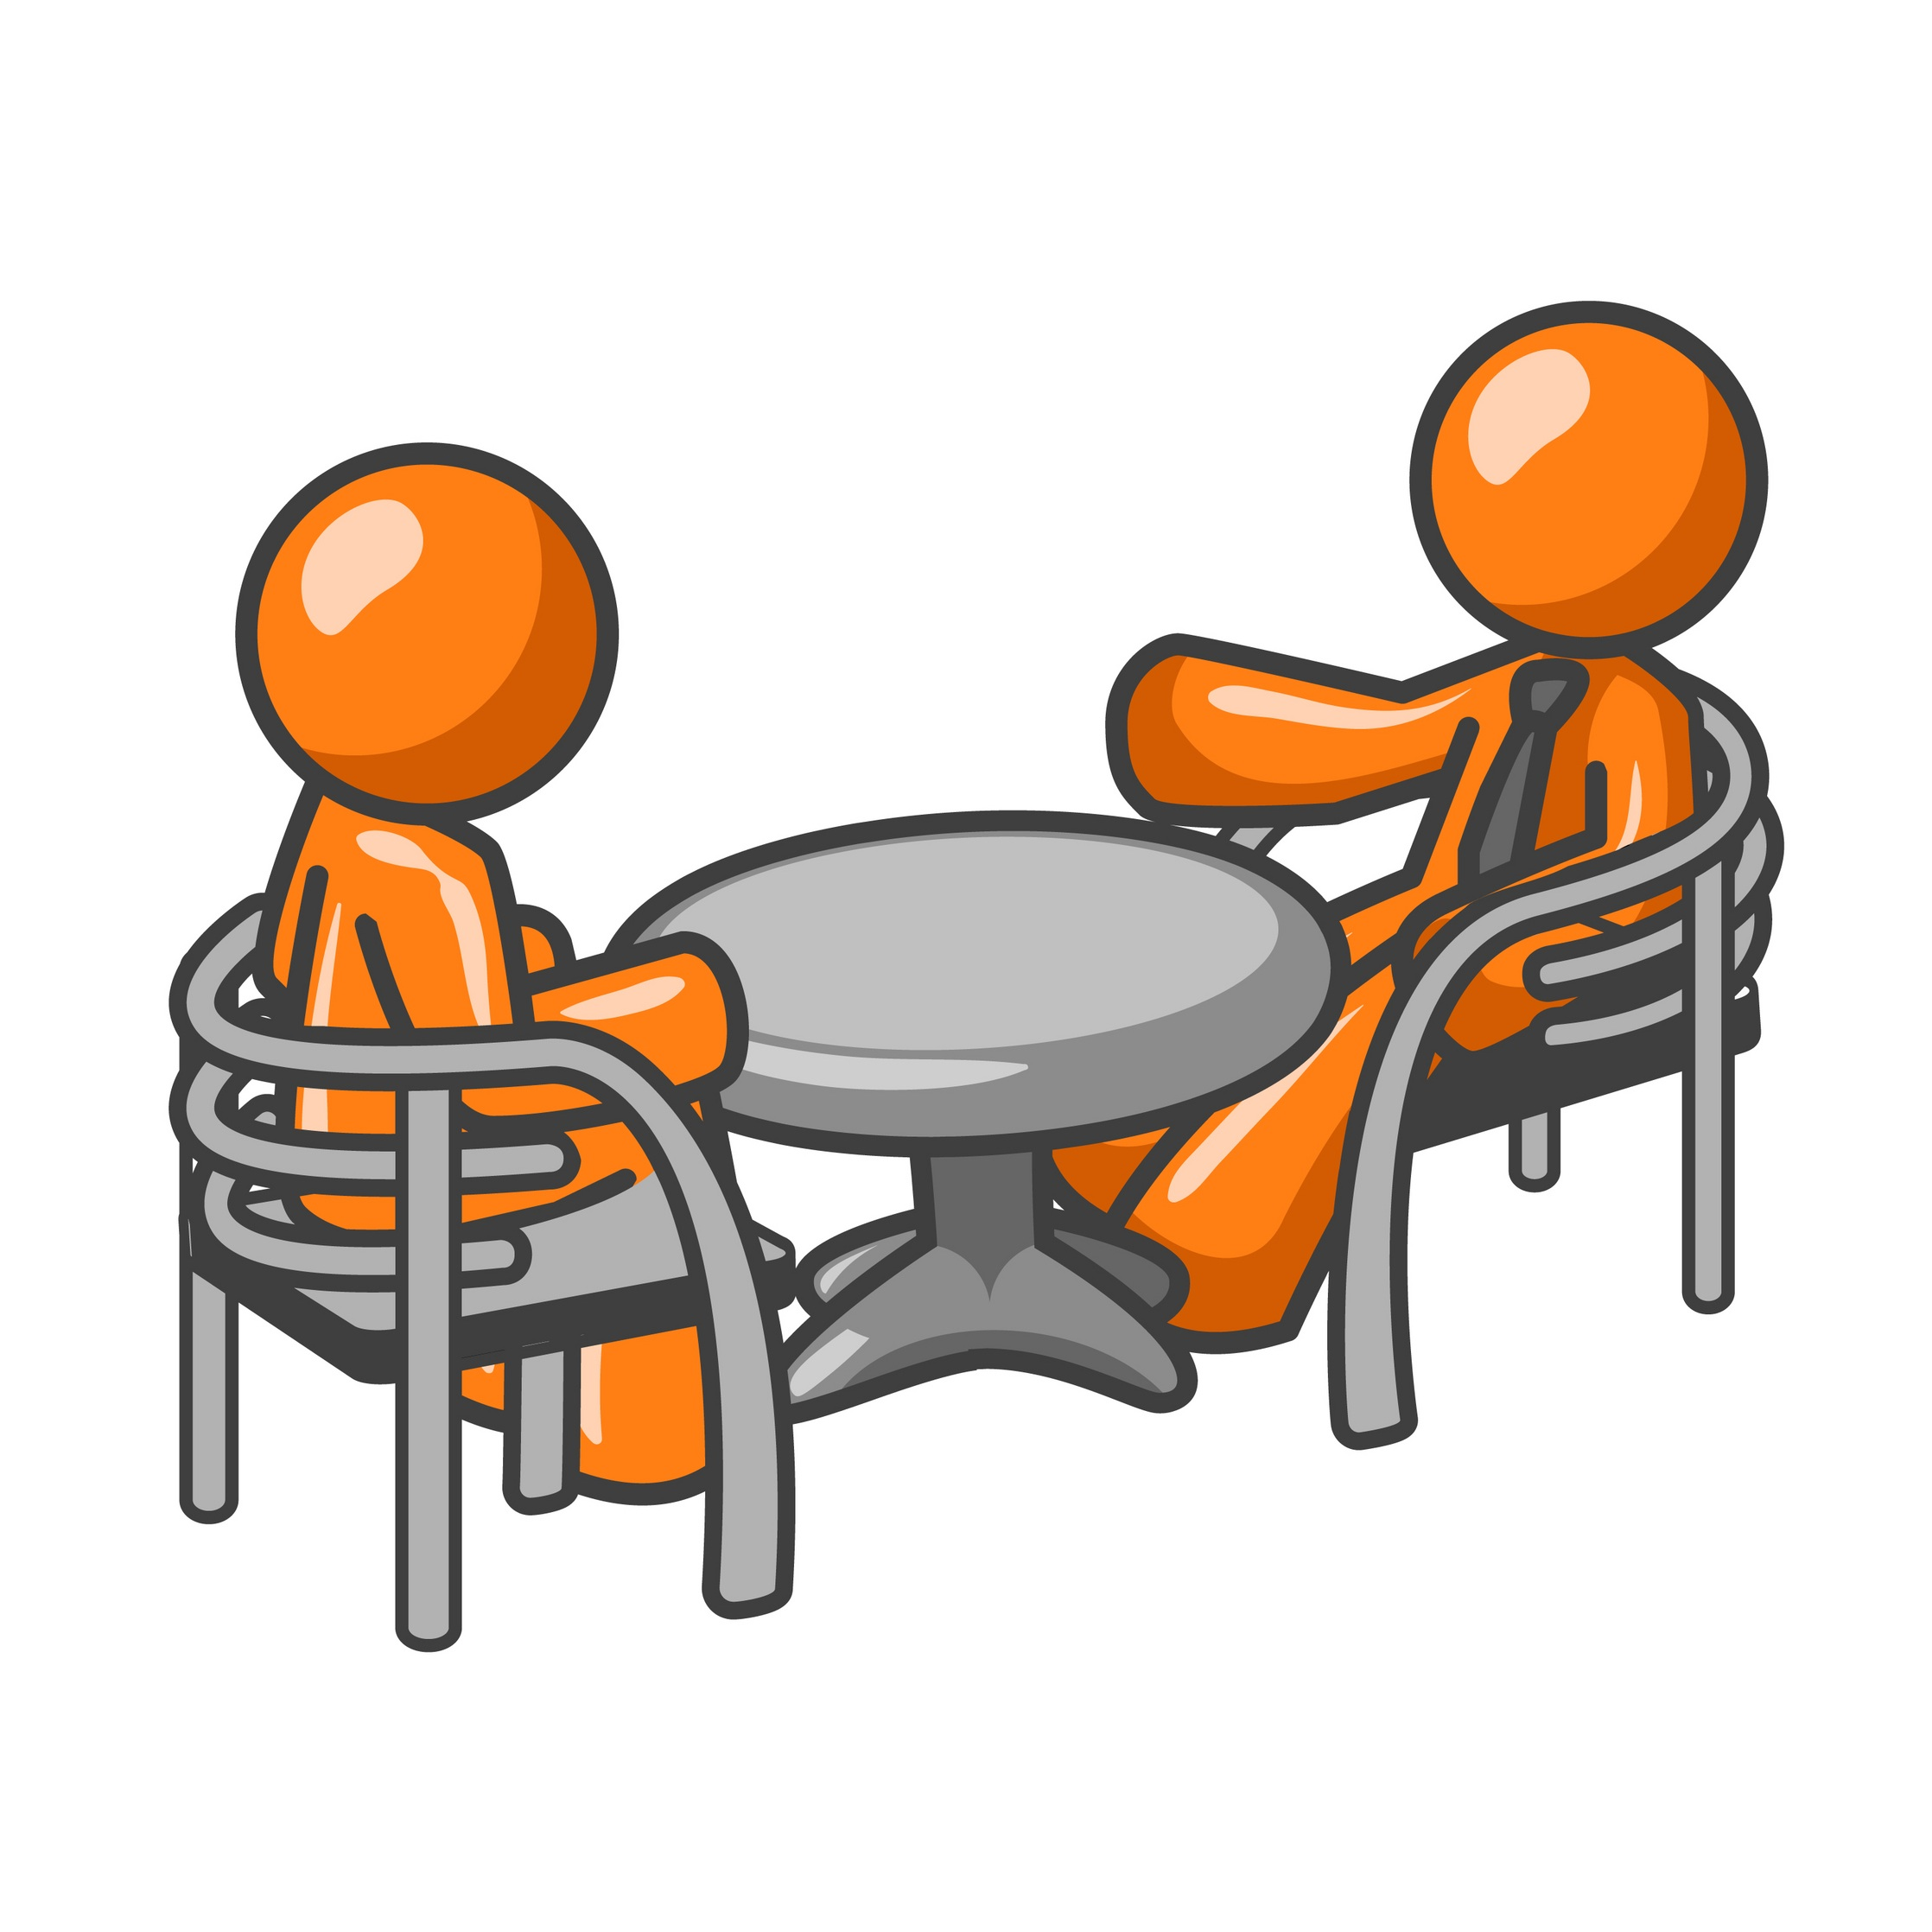 Woman Interview Clipart.